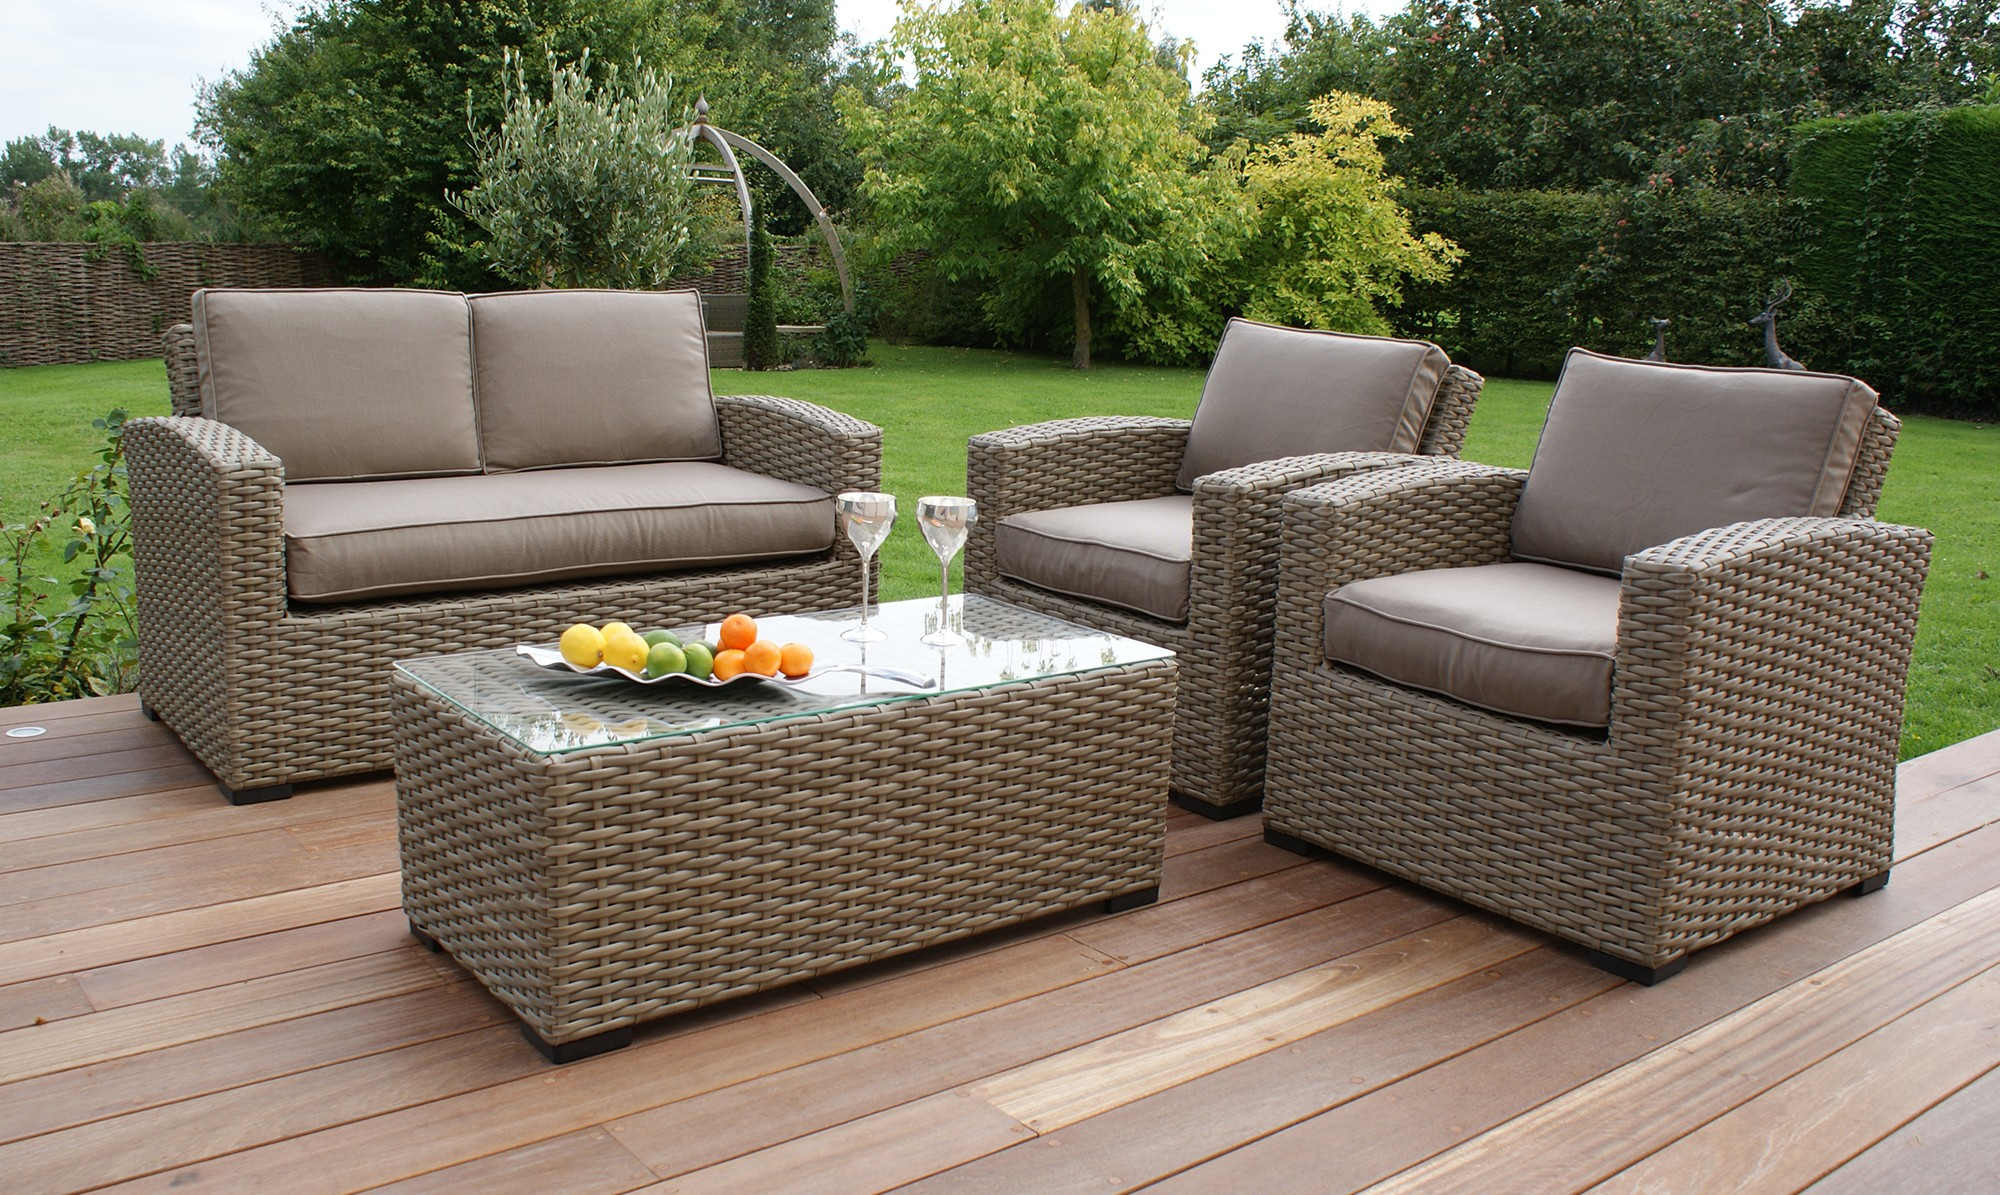 Choose the perfect designs of garden rattan furniture